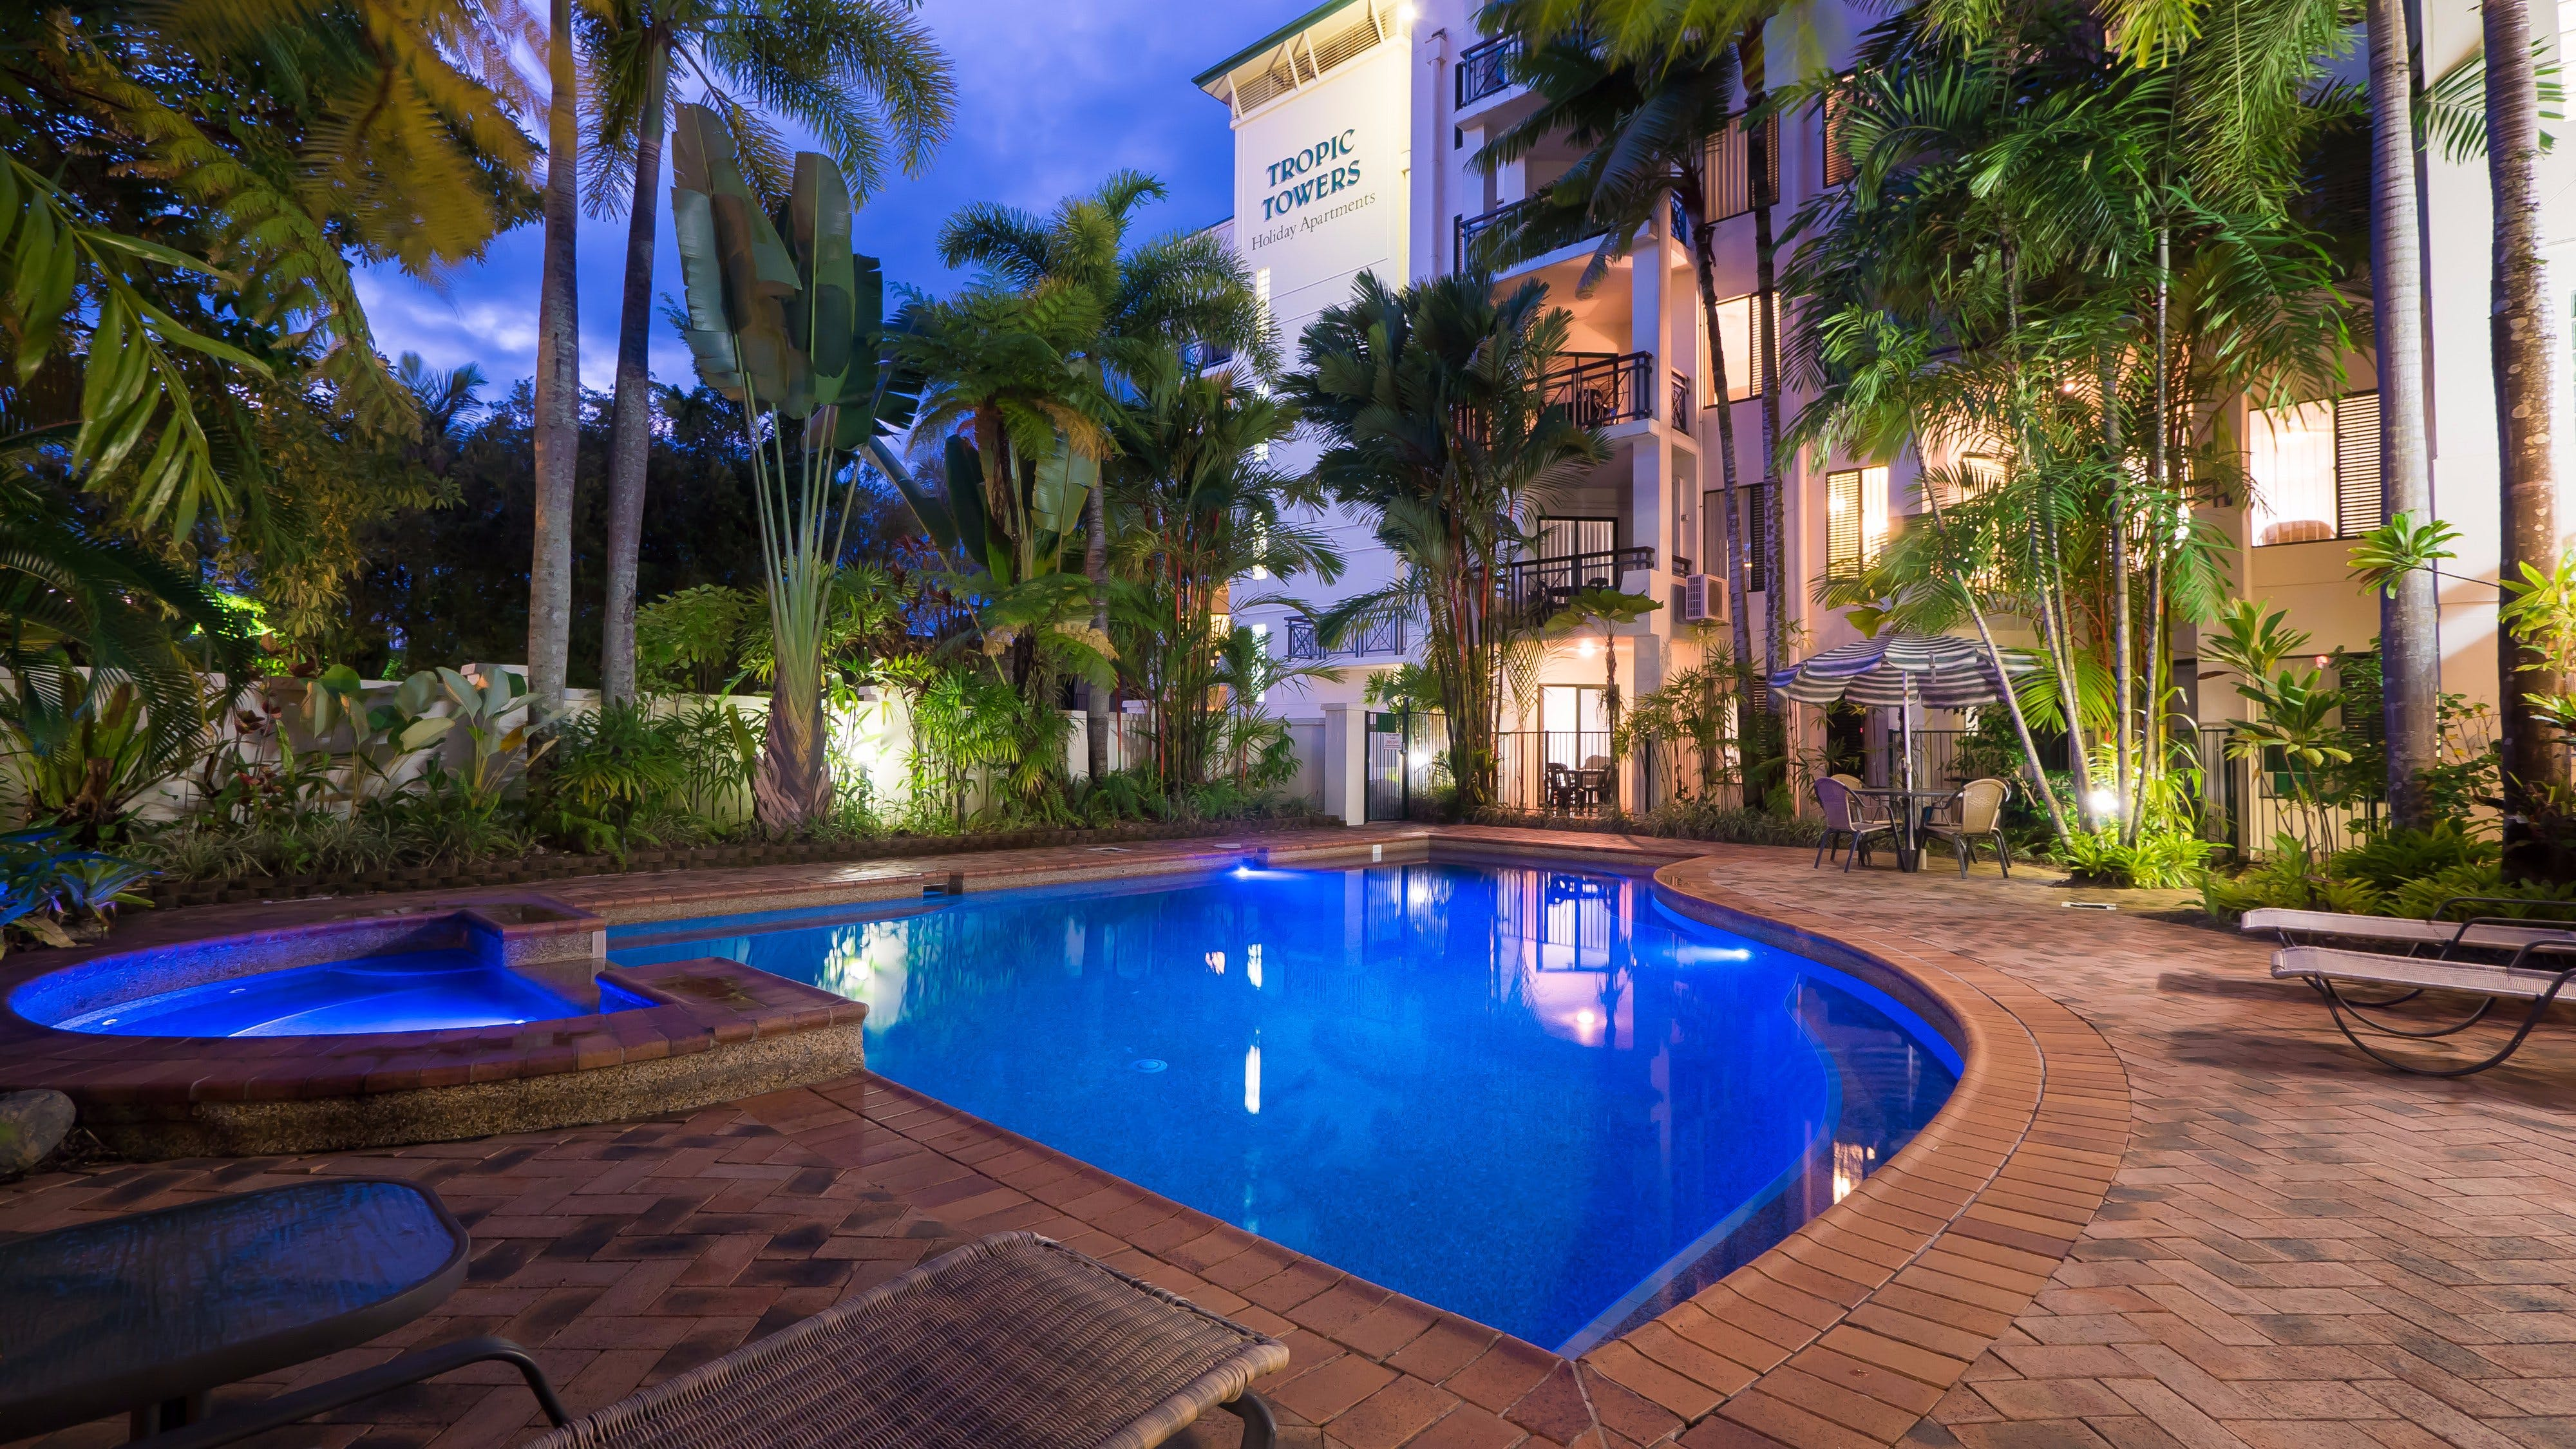 Tropic Towers Apartments - Accommodation Port Macquarie